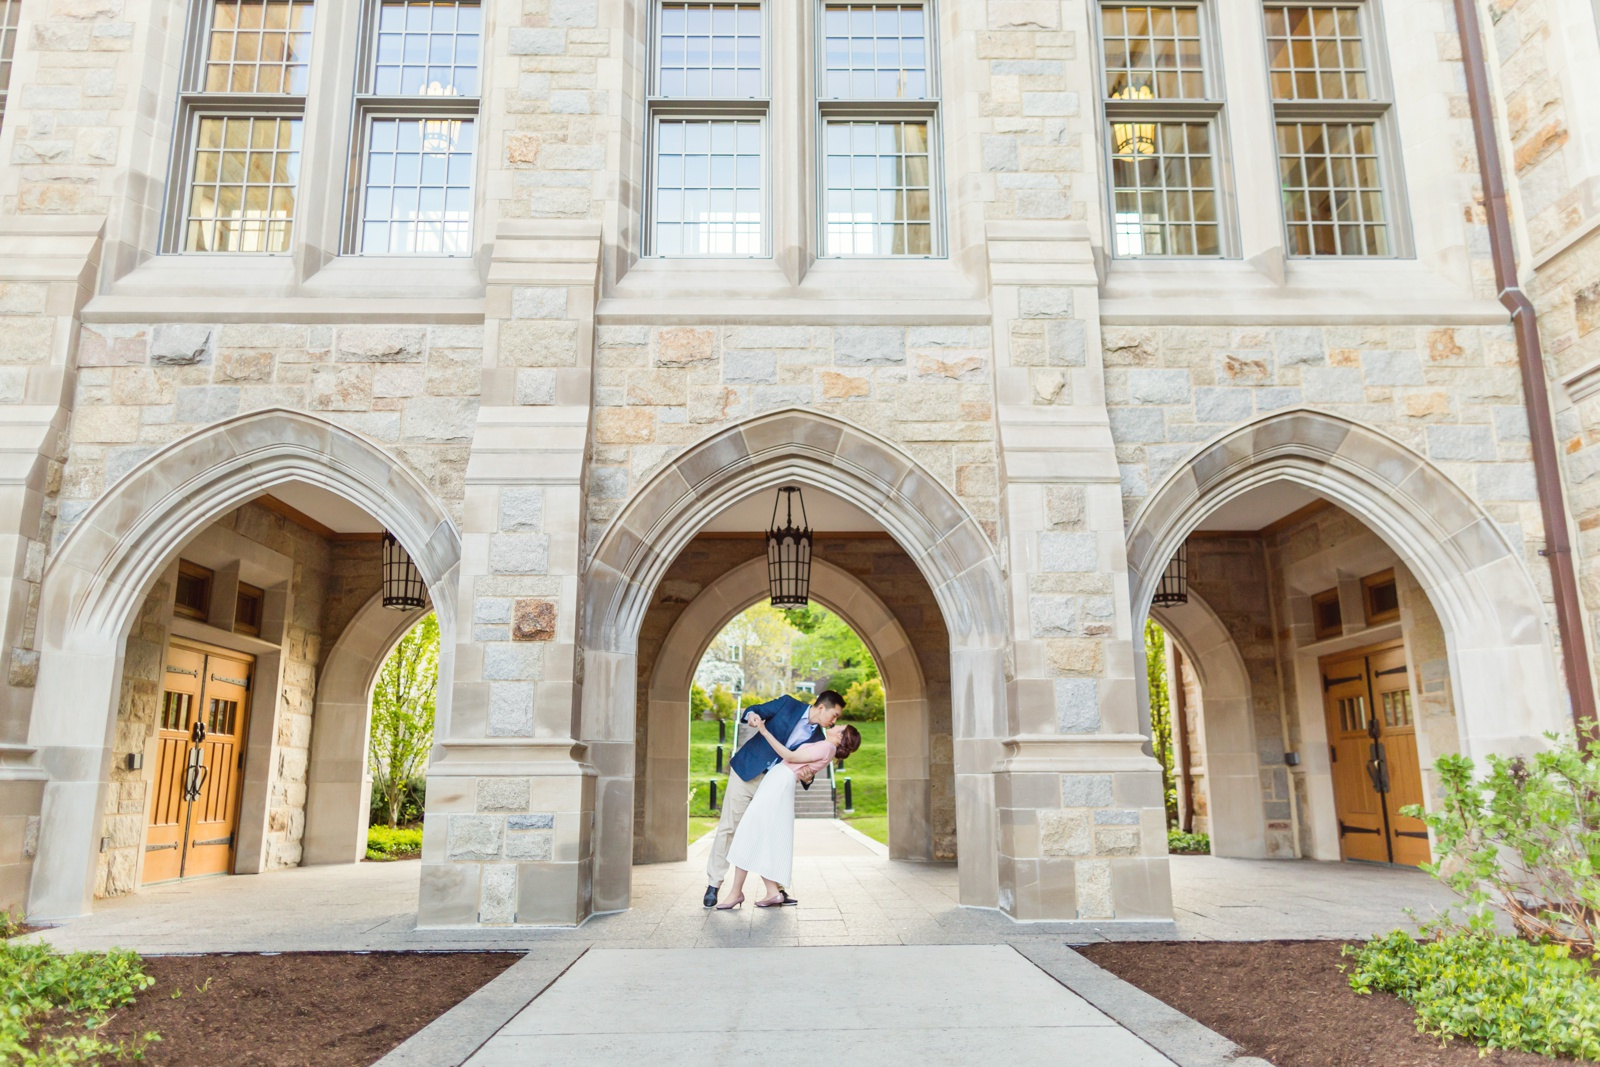 Engagement photos at Boston College arches